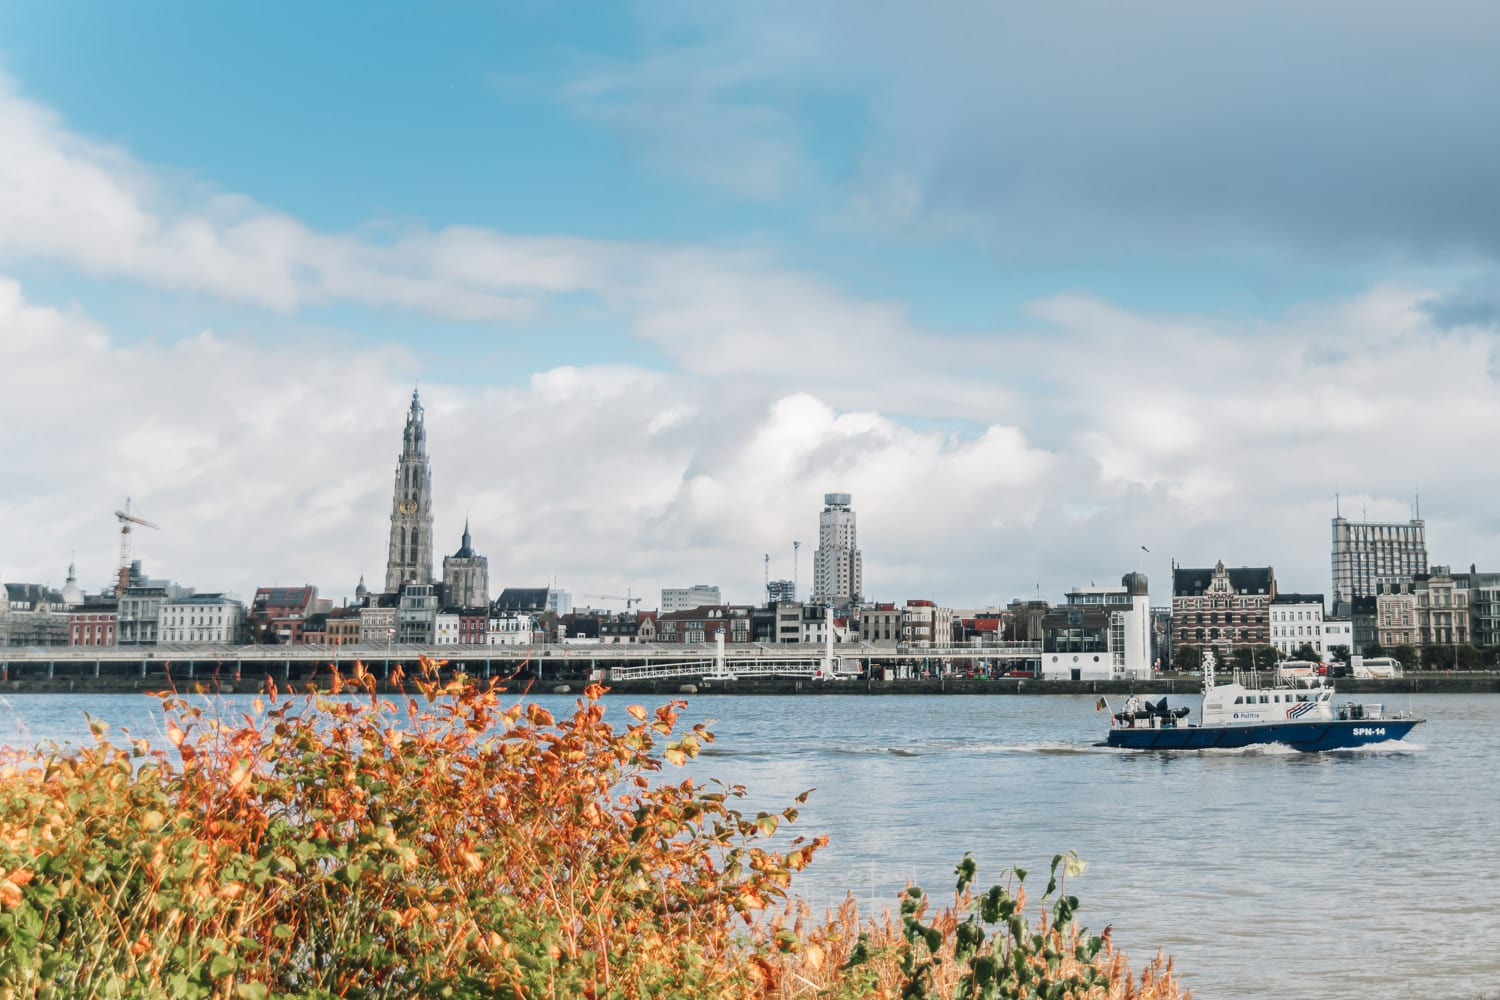 View of Antwerp from across the river Scheldt, Belgium